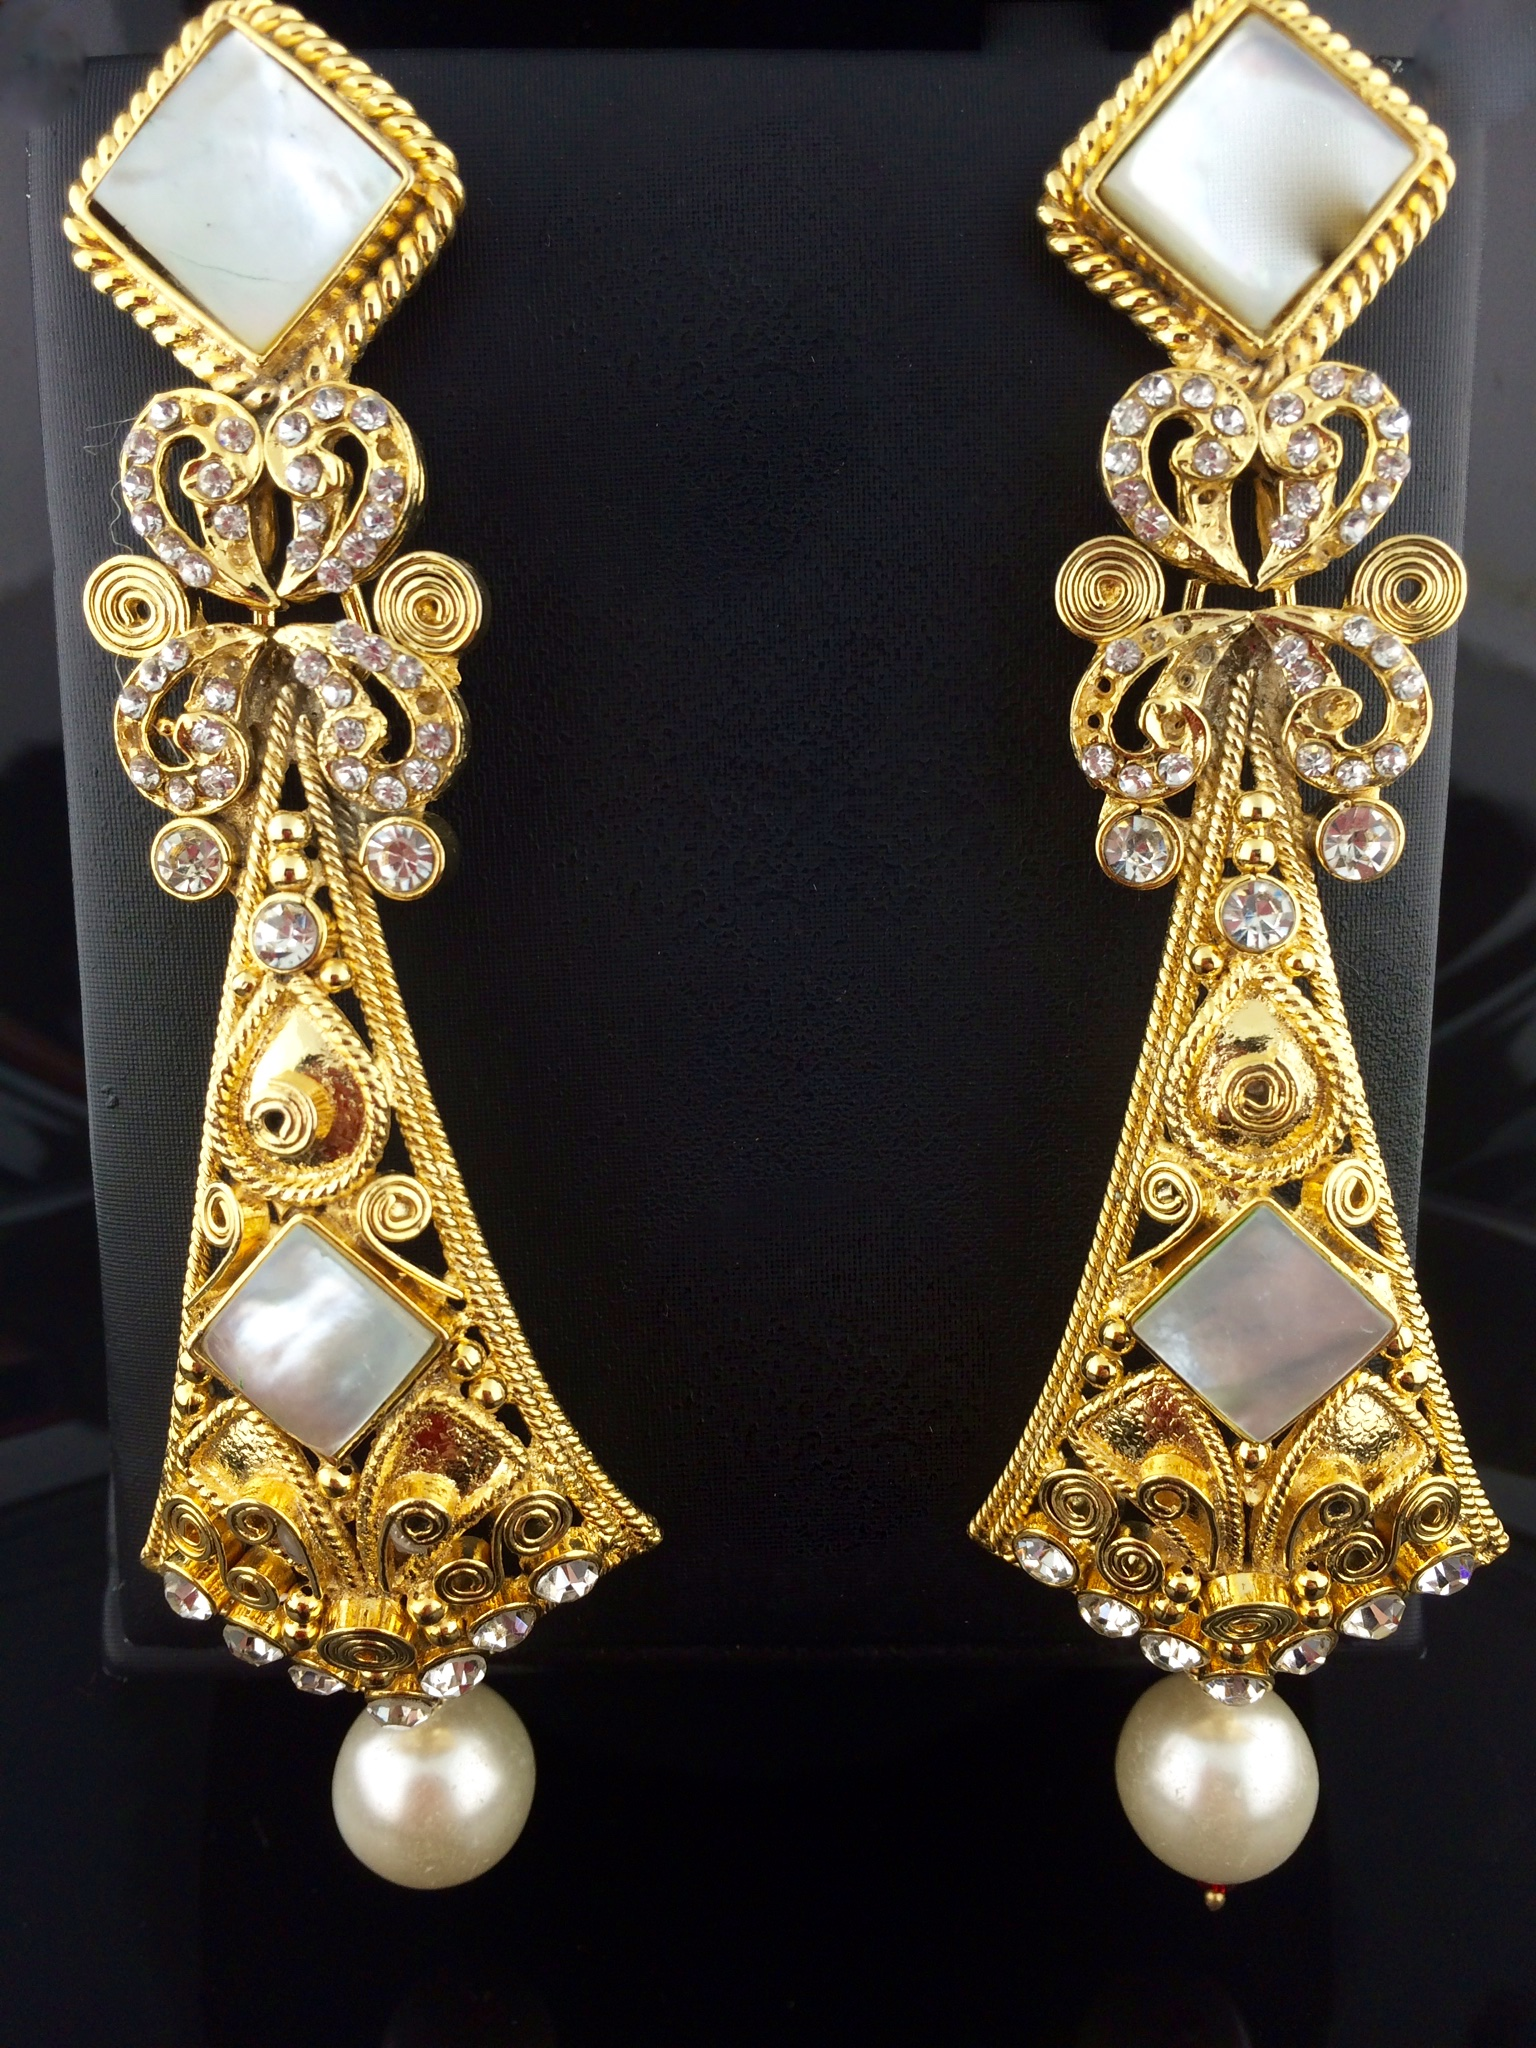 online for rockcrystal e karat plated buy rock designer women earrings gold crystal kiara